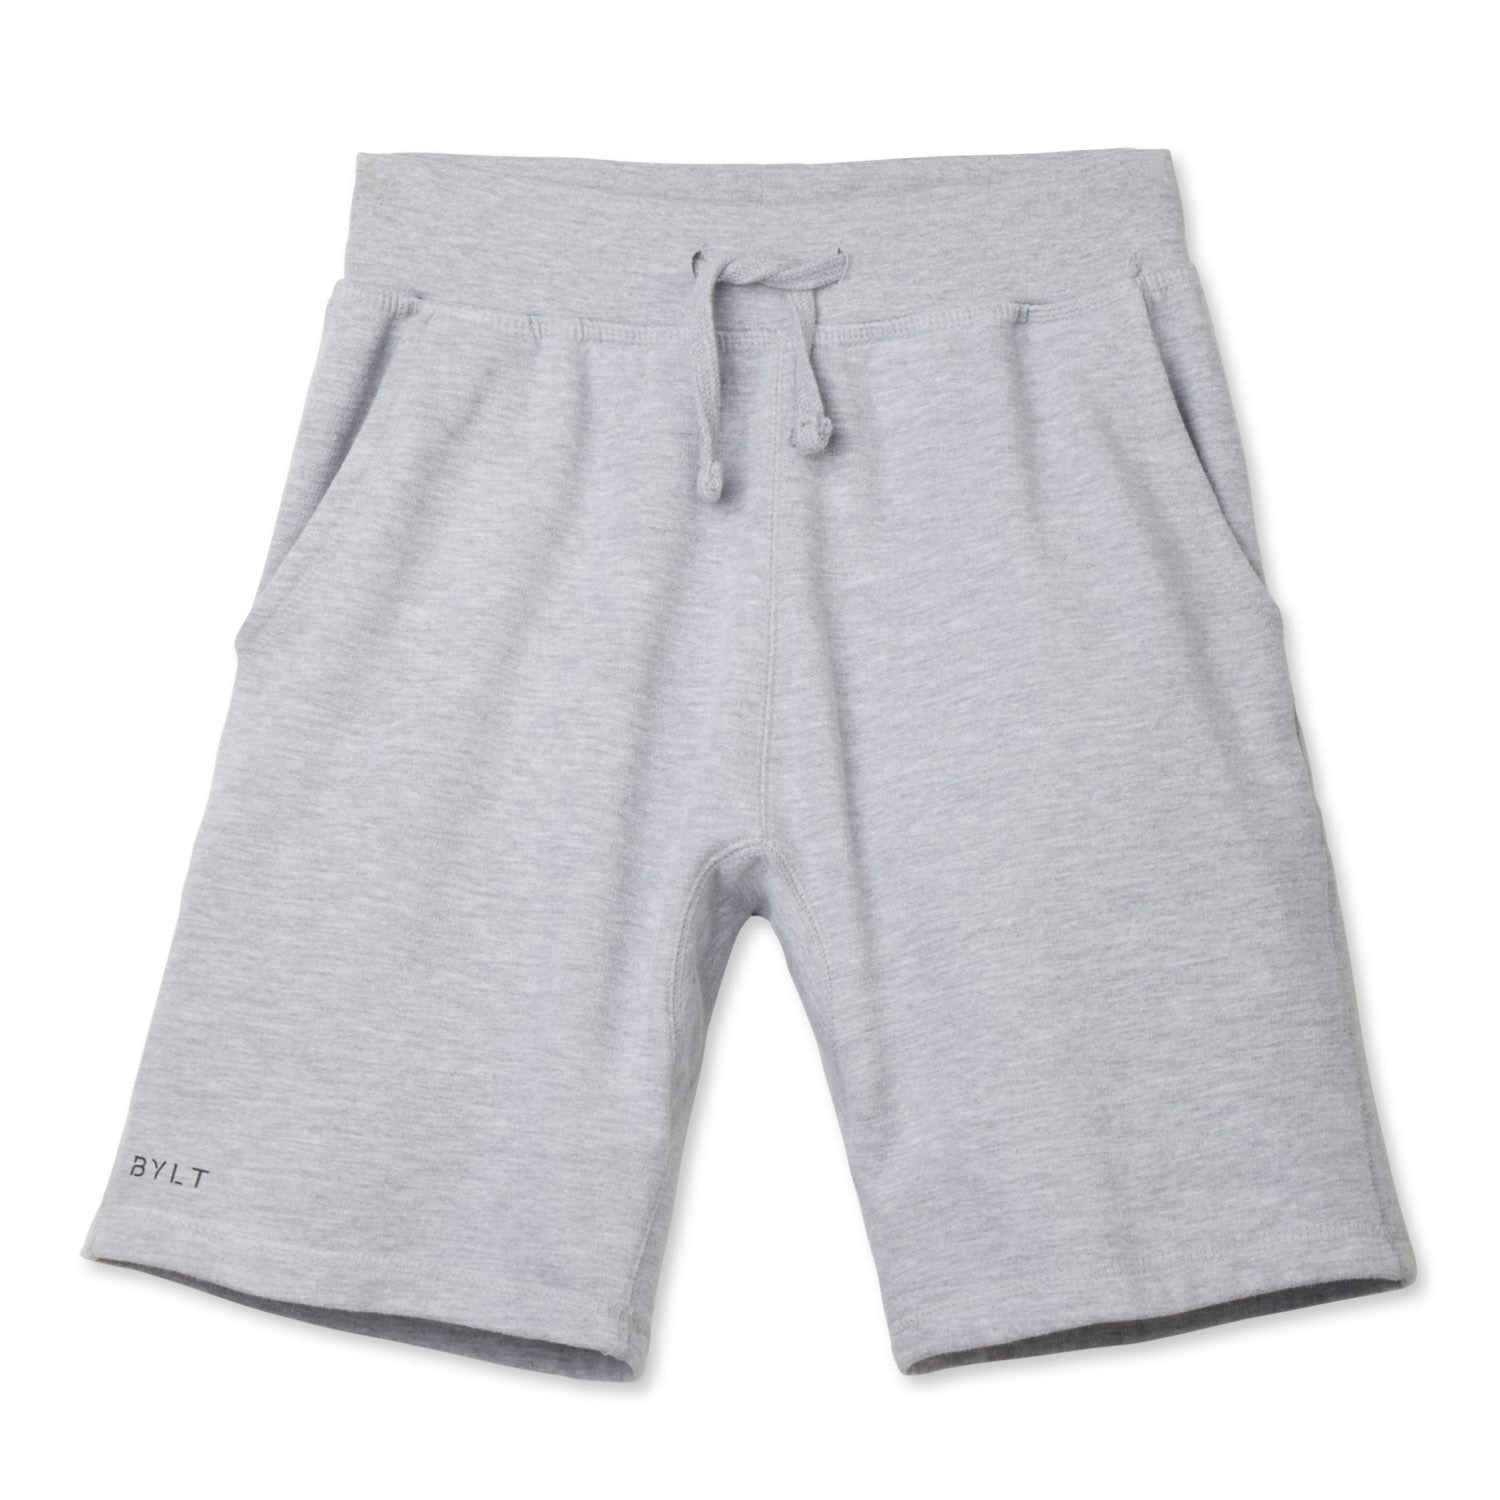 BYLT (BUILT) APPAREL BASICS JOGGER SHORT GRAY